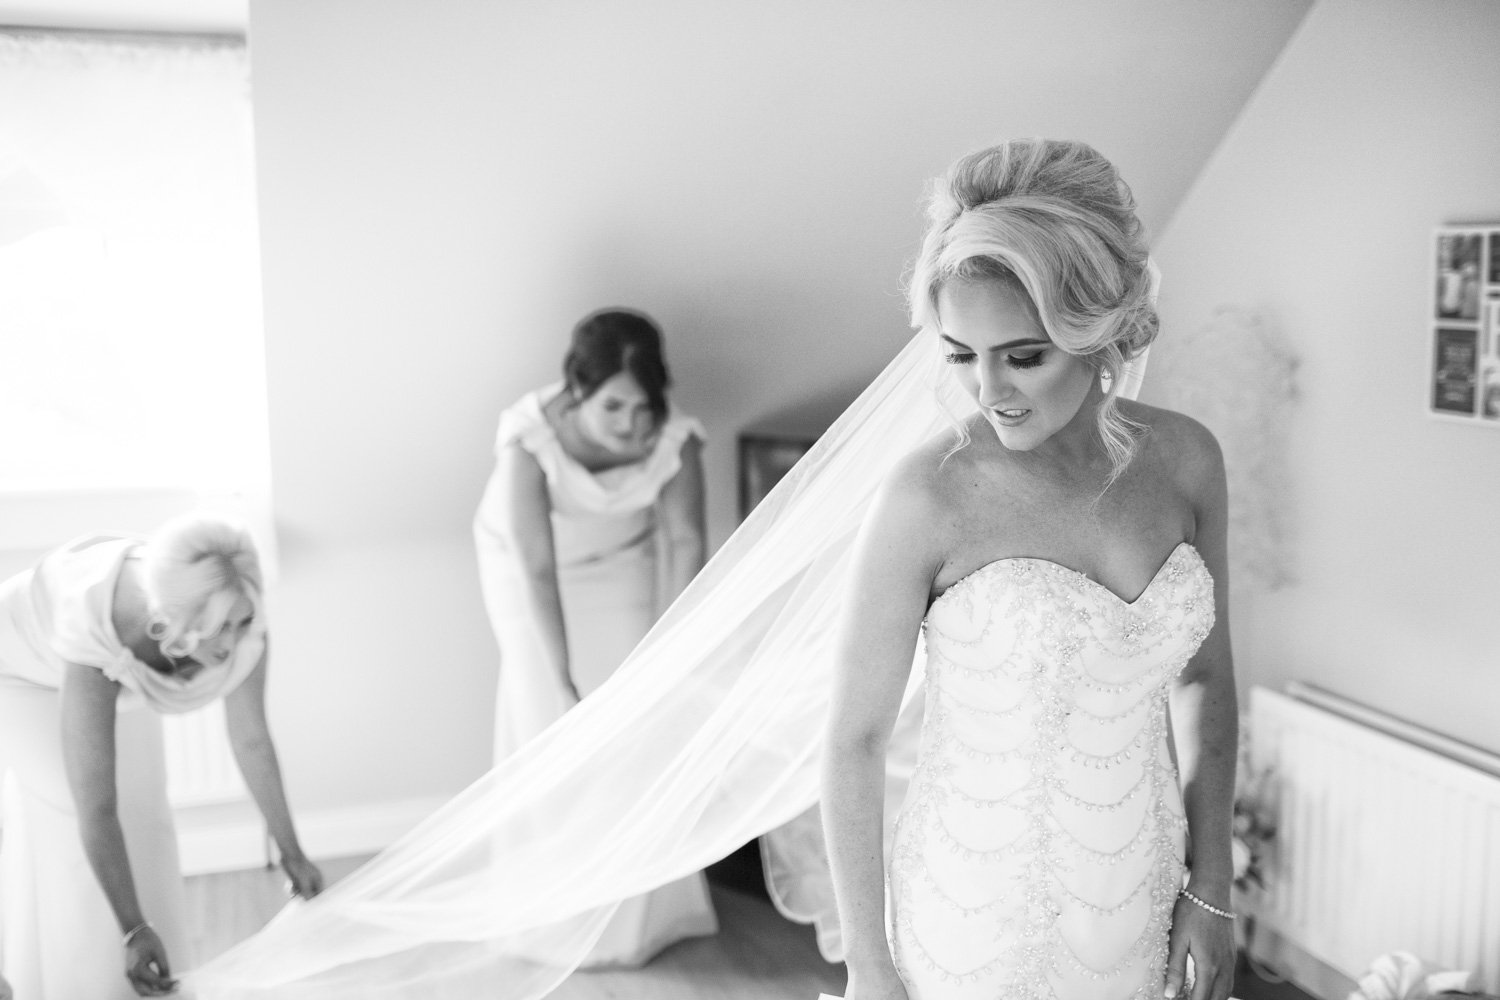 Mark_Barnes_wedding_photographer_Northern_Ireland_Wedding_photography_Carlingford_Four_Seasons_Wedding-16.jpg